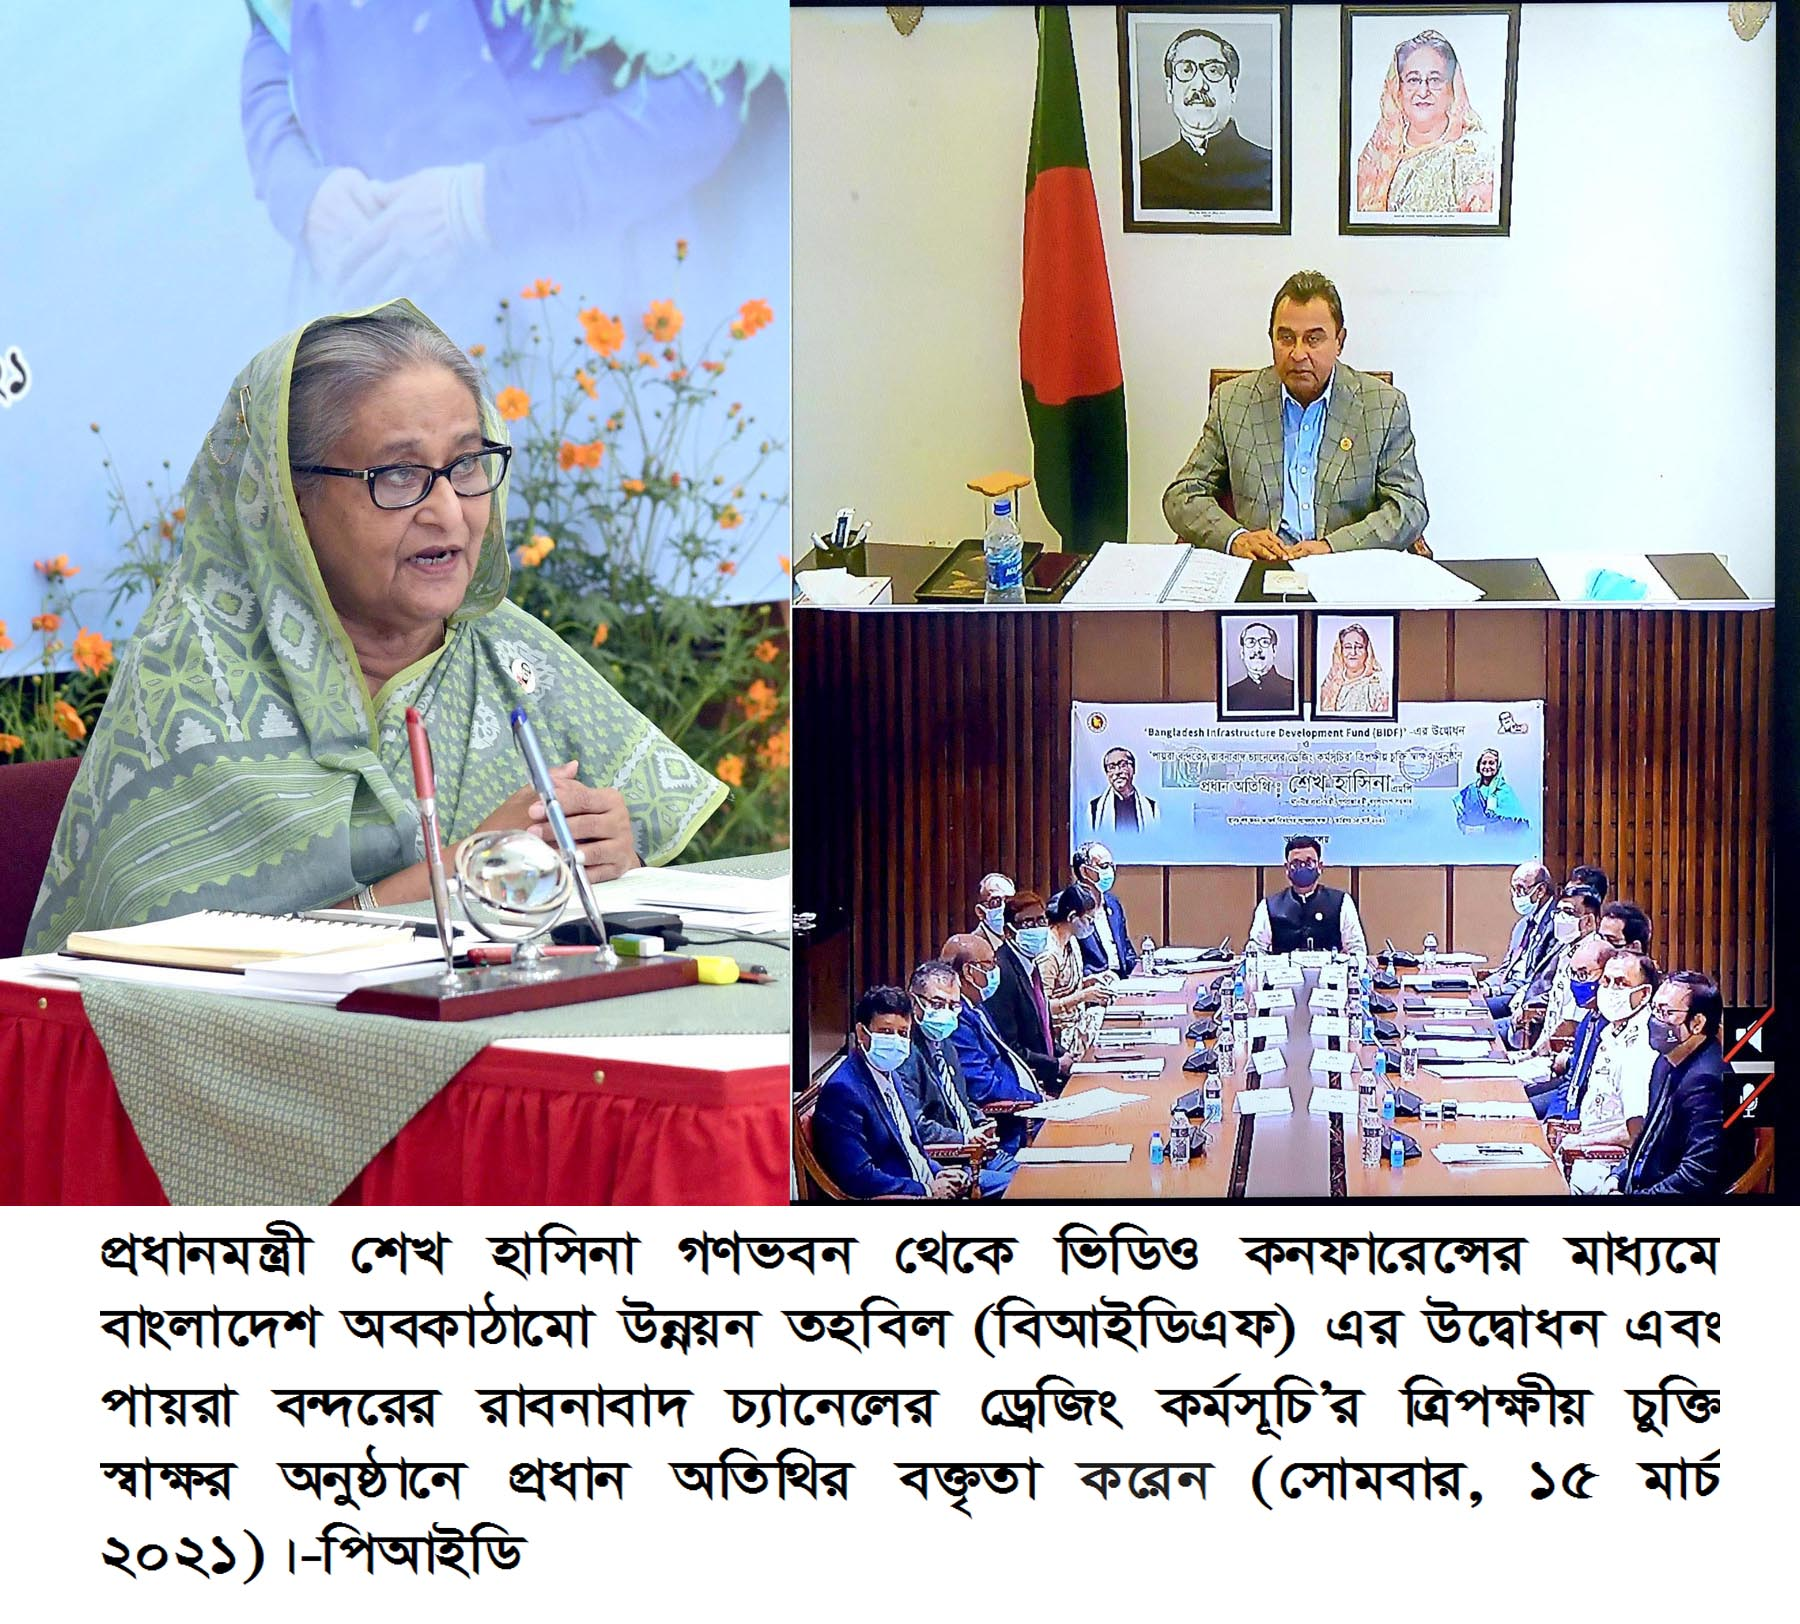 Sheikh Hasina attends crucial event via video conference